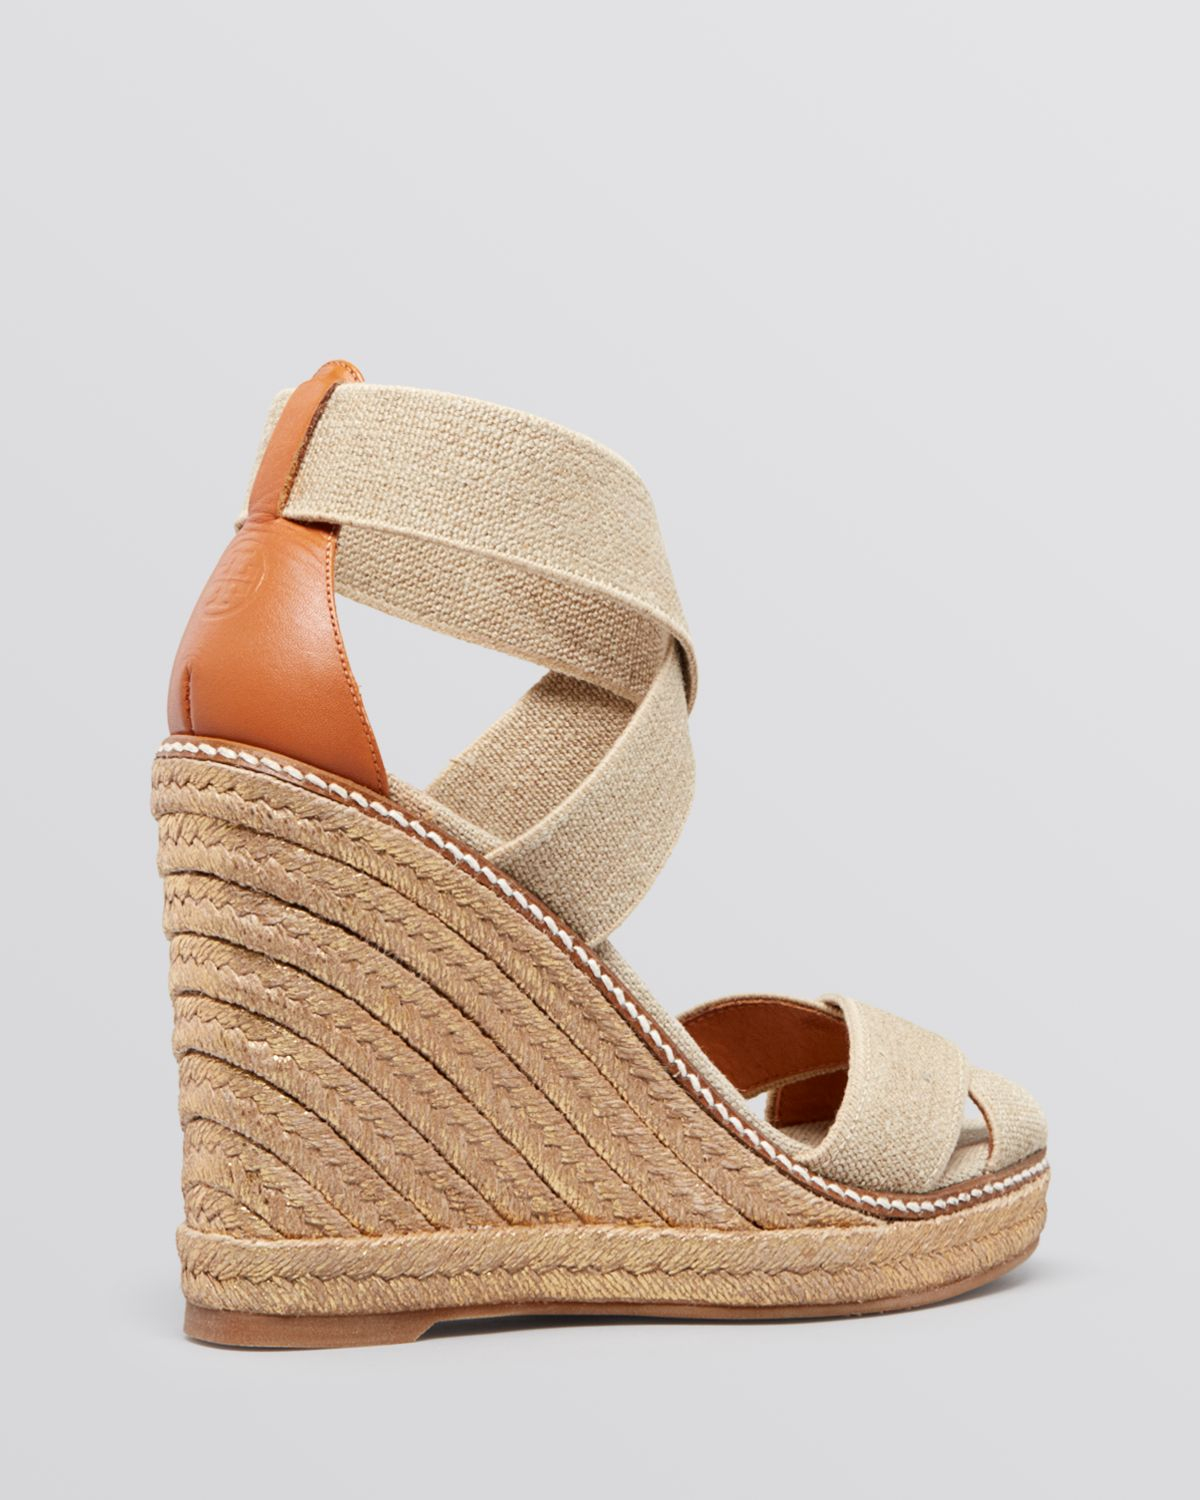 a262c5b3e7db34 Tory Burch Platform Wedge Espadrille Sandals Adonis in Natural - Lyst